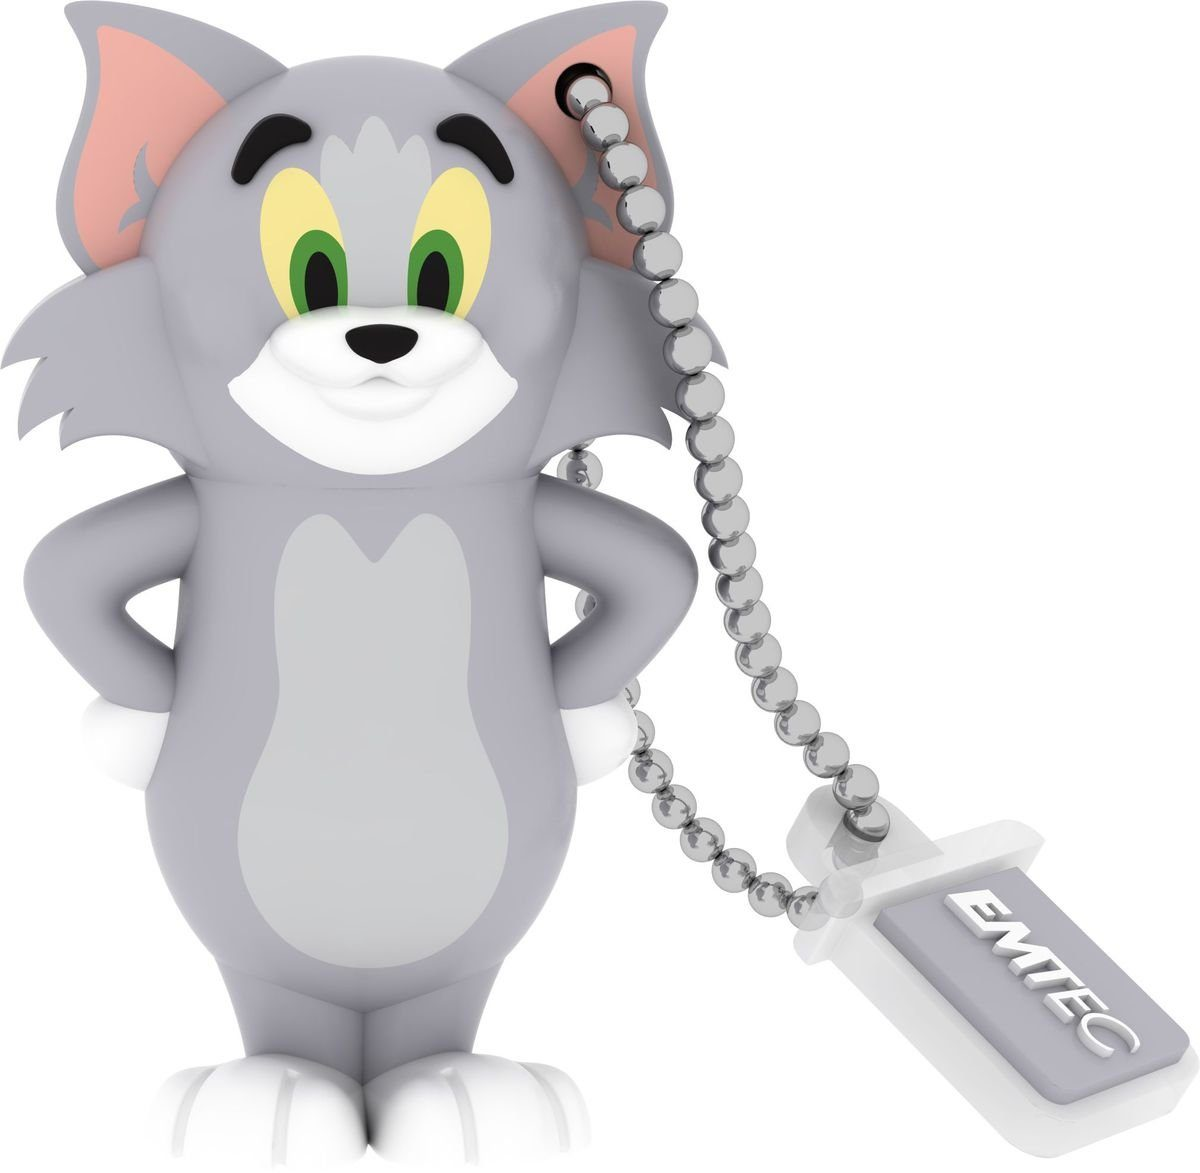 EMTEC USB-Stick »USB2.0 HB102 8GB Tom&Jerry - Tom«